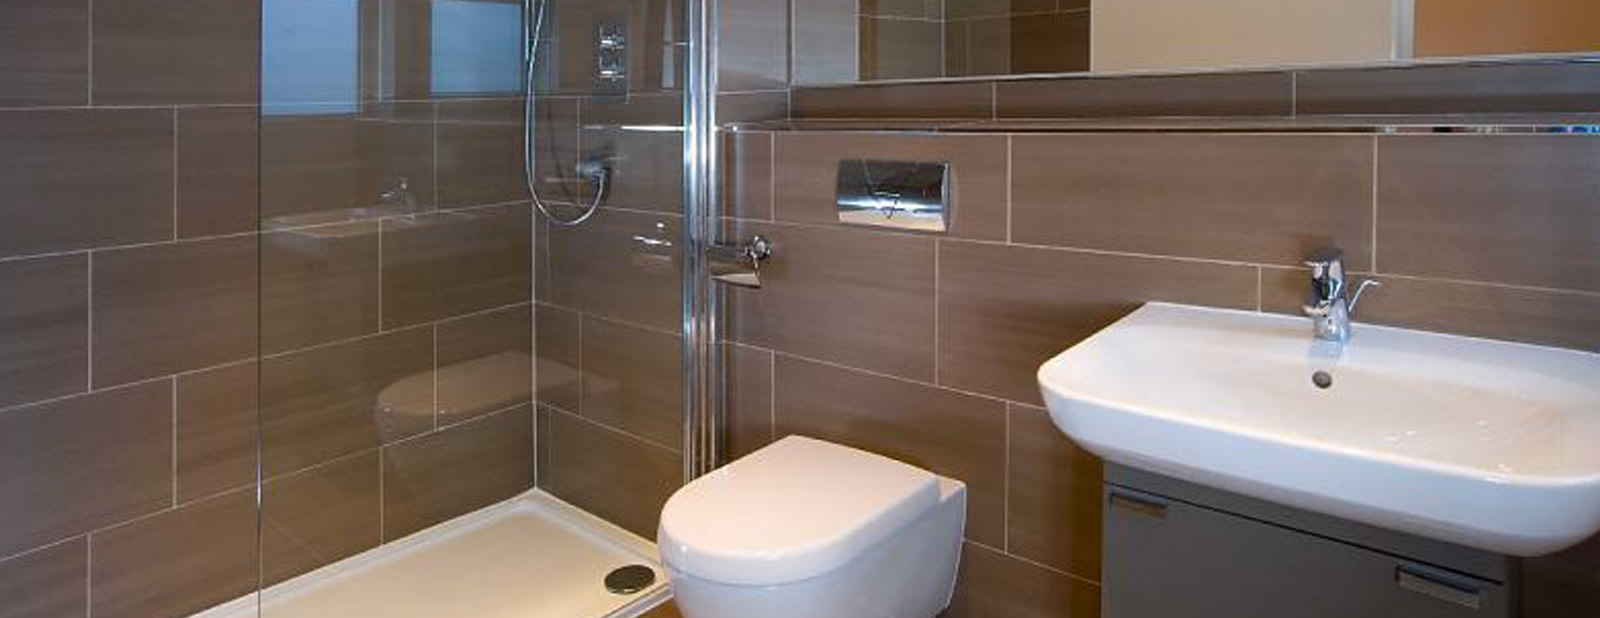 Peter Brown Complete bathroom installation package